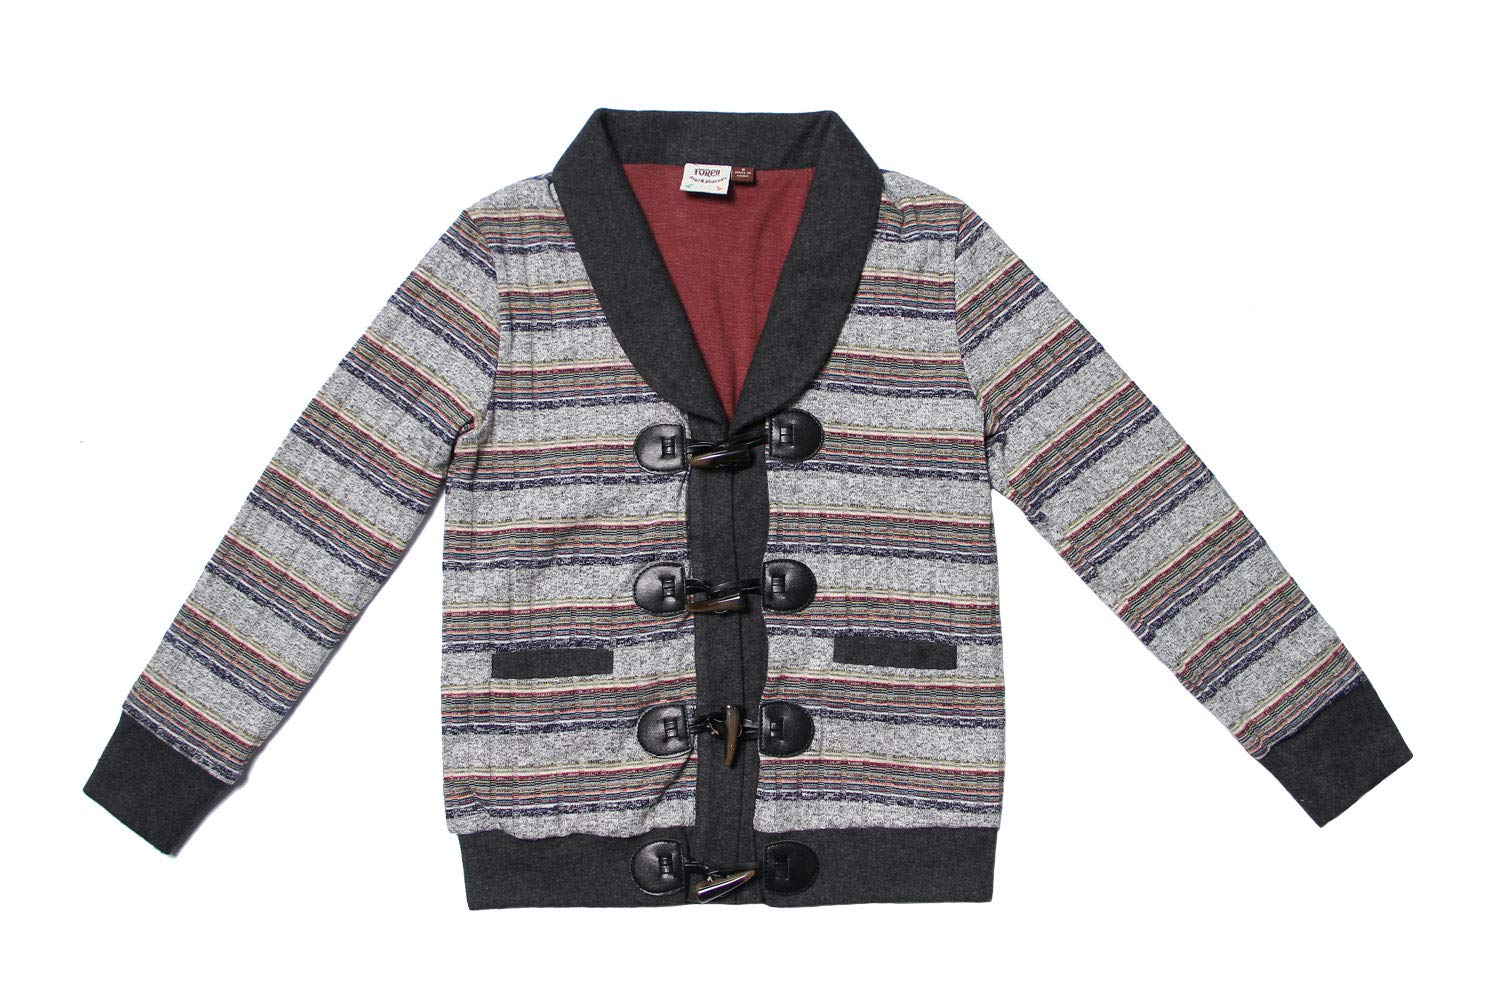 Fore!! Axel & Hudson Boy Jacket Multi-Stripe Sweater Knit Cardigan (10)